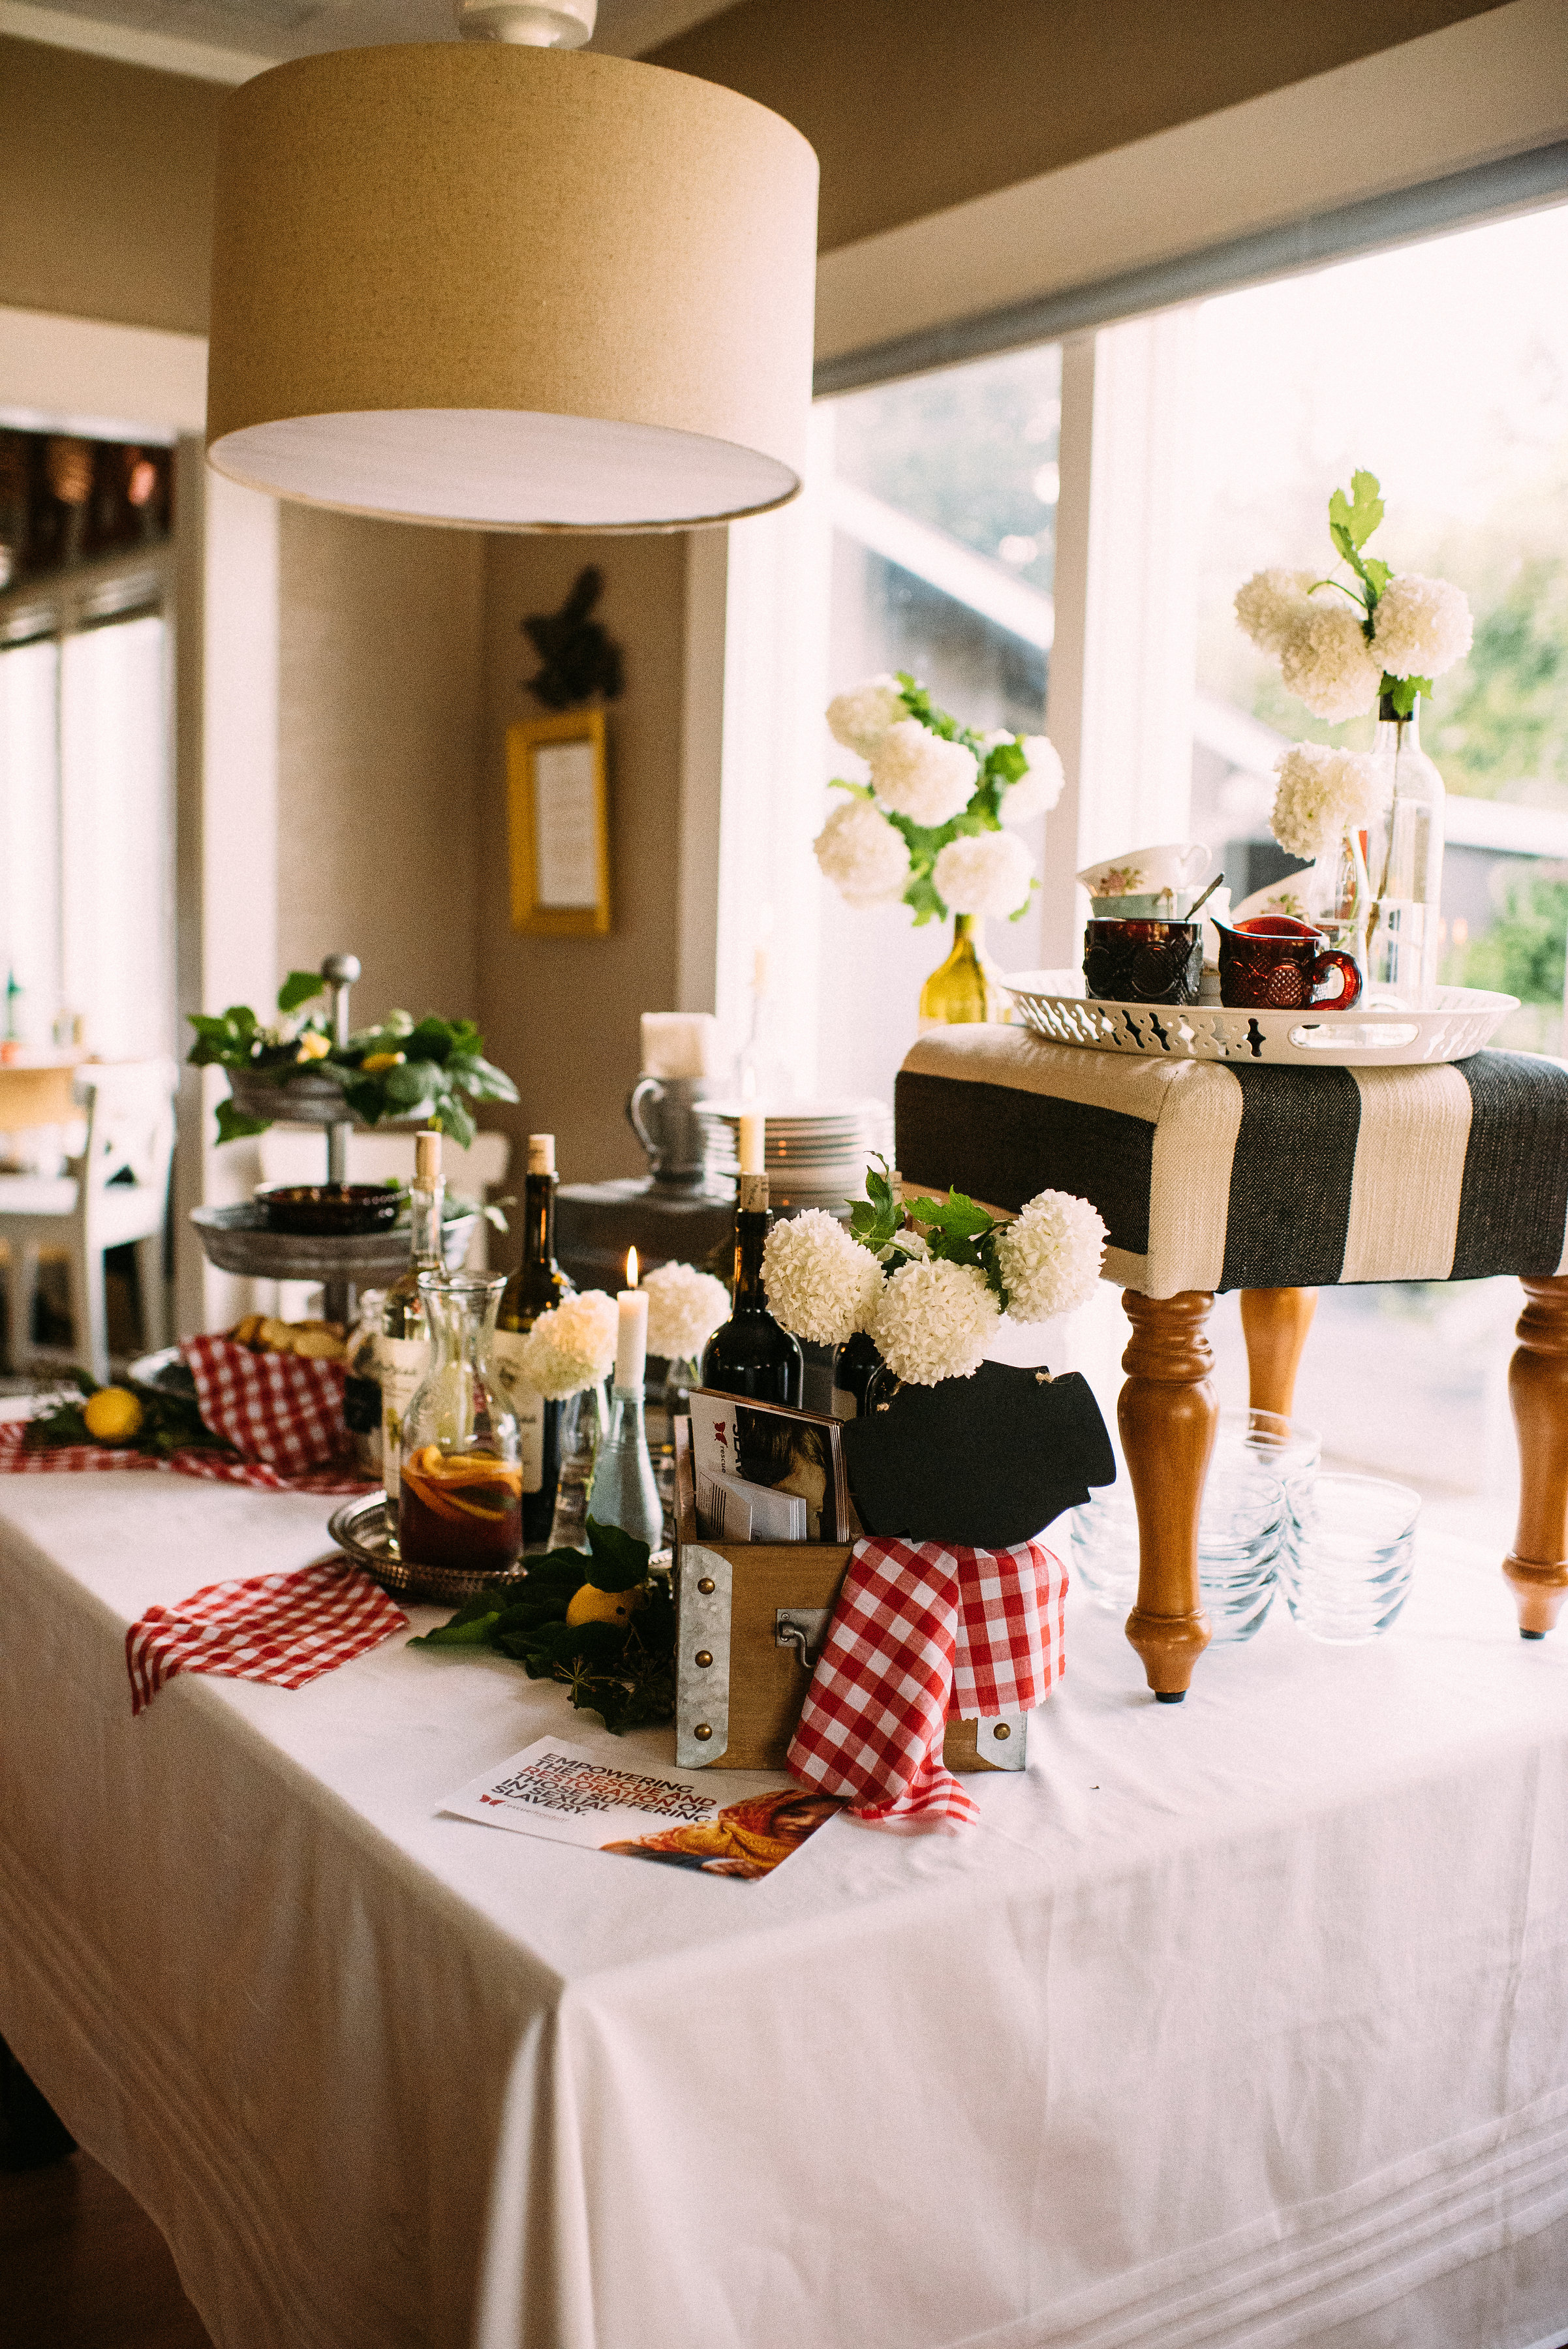 I love having a simple side table set up with drink and appetizers. I tell our guests to find their seat at the table, grab their glass and help themselves. Having a side table encourages the guests to mingle!